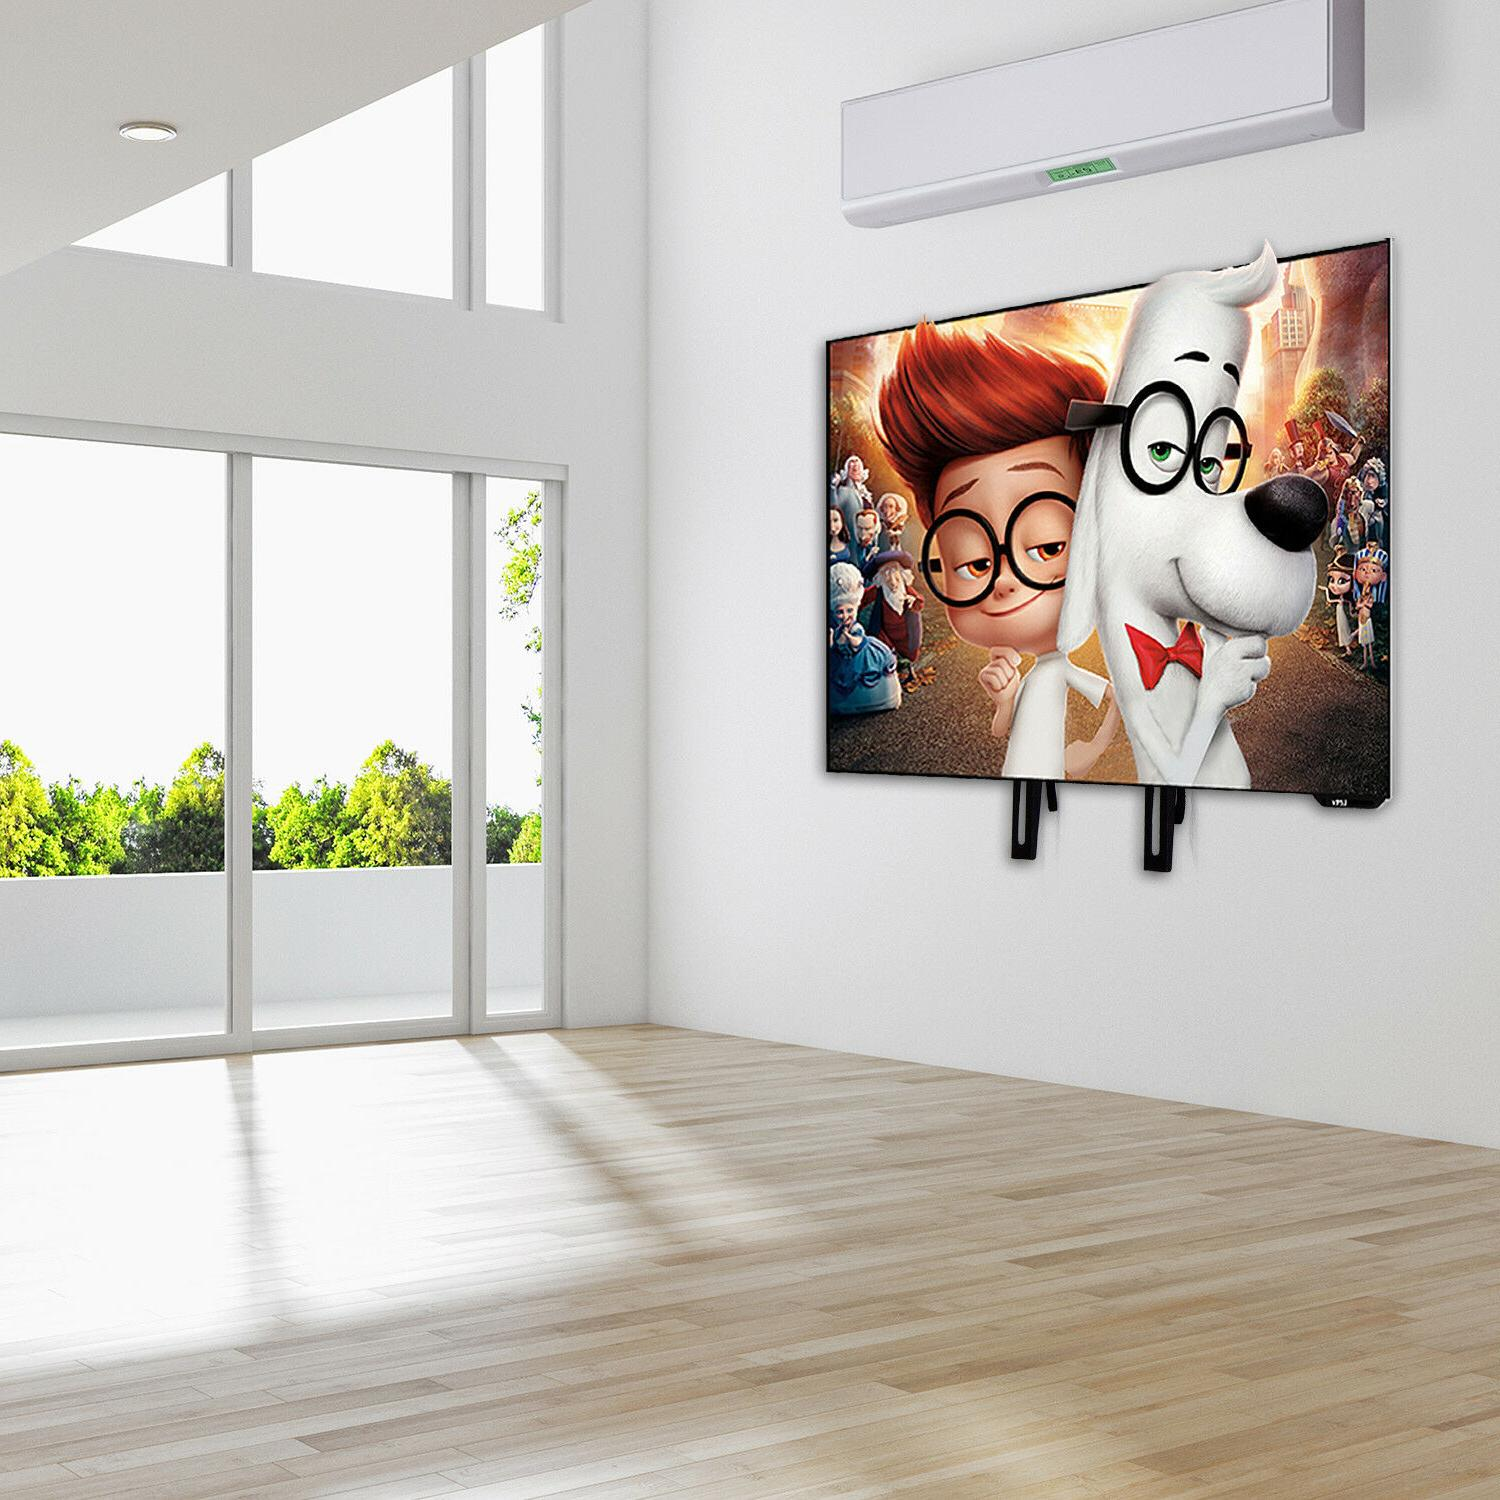 Low Fixed TV Wall Mount LED LCD Screen